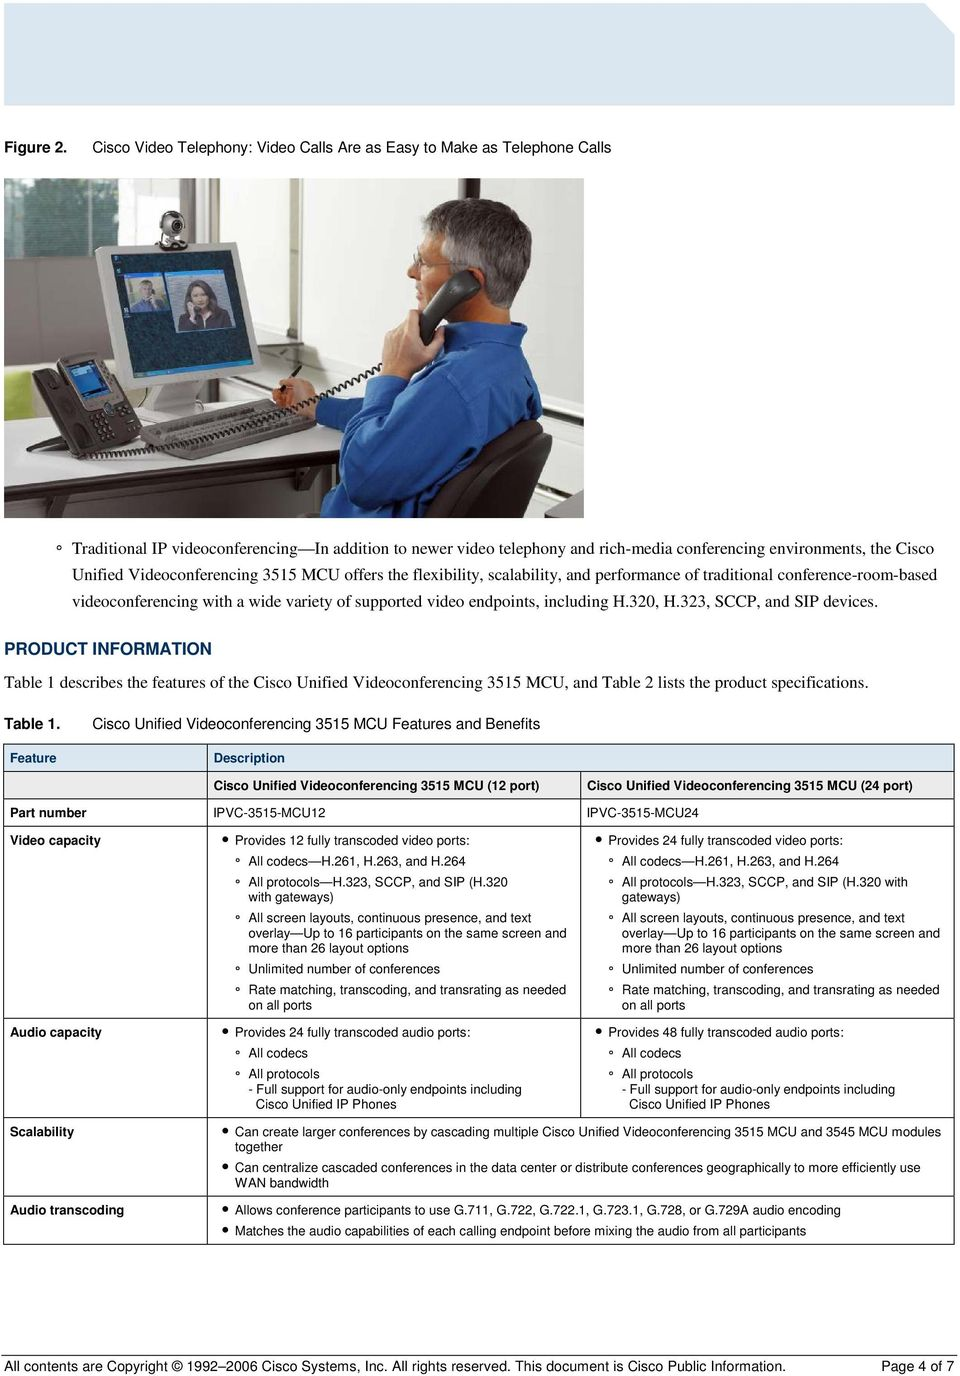 Unified Videoconferencing 3515 MCU offers the flexibility, scalability, and performance of traditional conference-room-based videoconferencing with a wide variety of supported video endpoints,